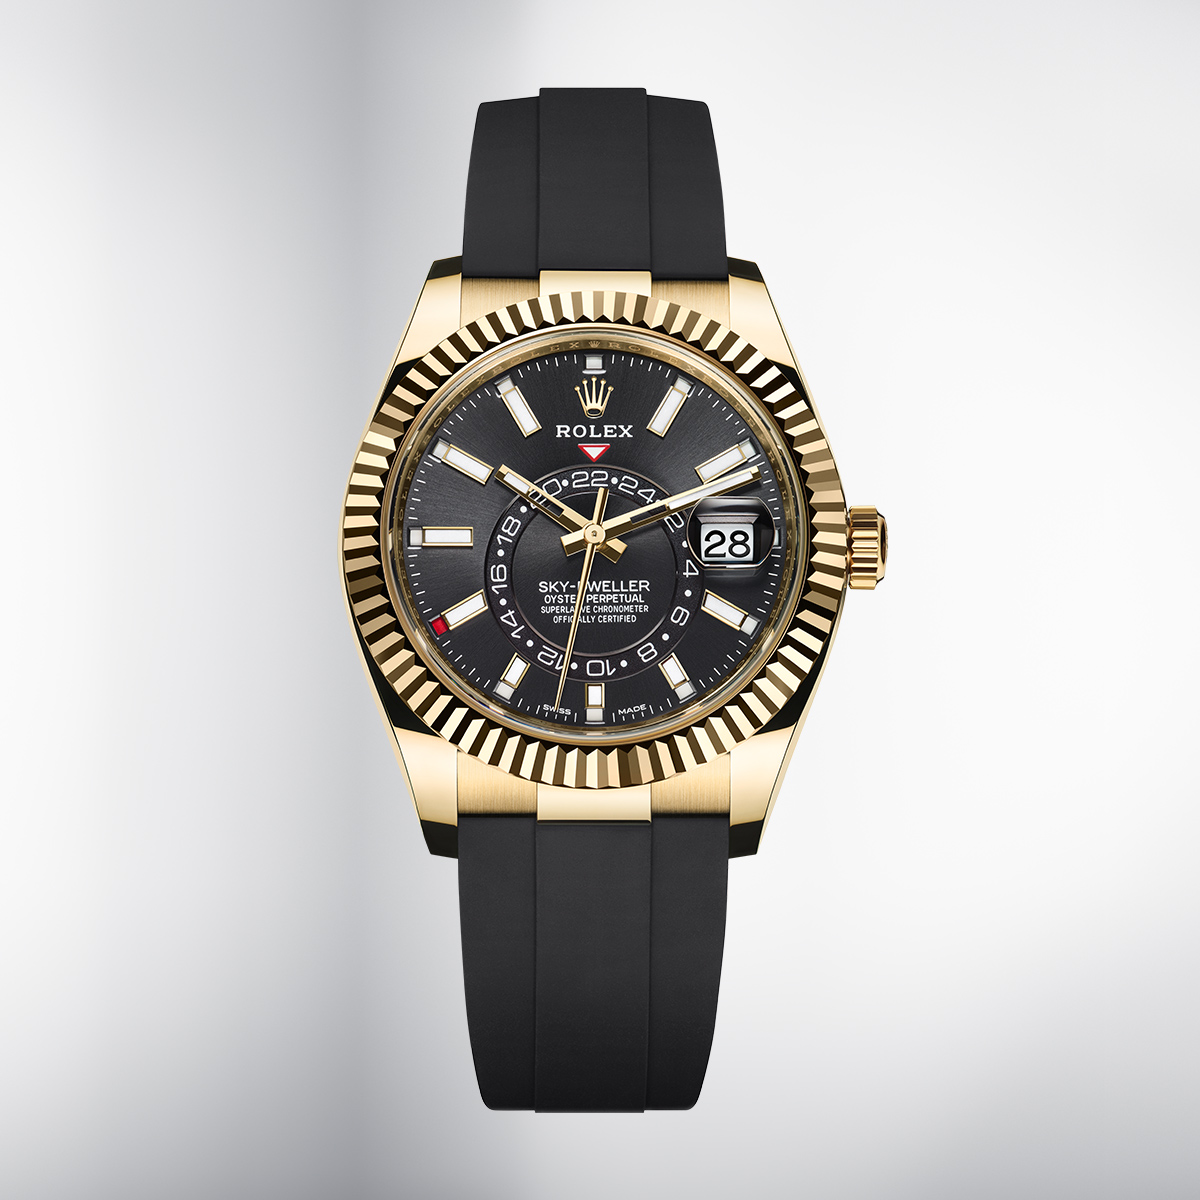 The new #SkyDweller in 18ct yellow gold is fitted with an Oysterflex bracelet; it is the brand's first watch from the Classic category to feature this innovative bracelet made of high-performance black elastomer. More https://t.co/93XvNwlyU5 #NewWatches2020 https://t.co/ZCzOs9ONMx